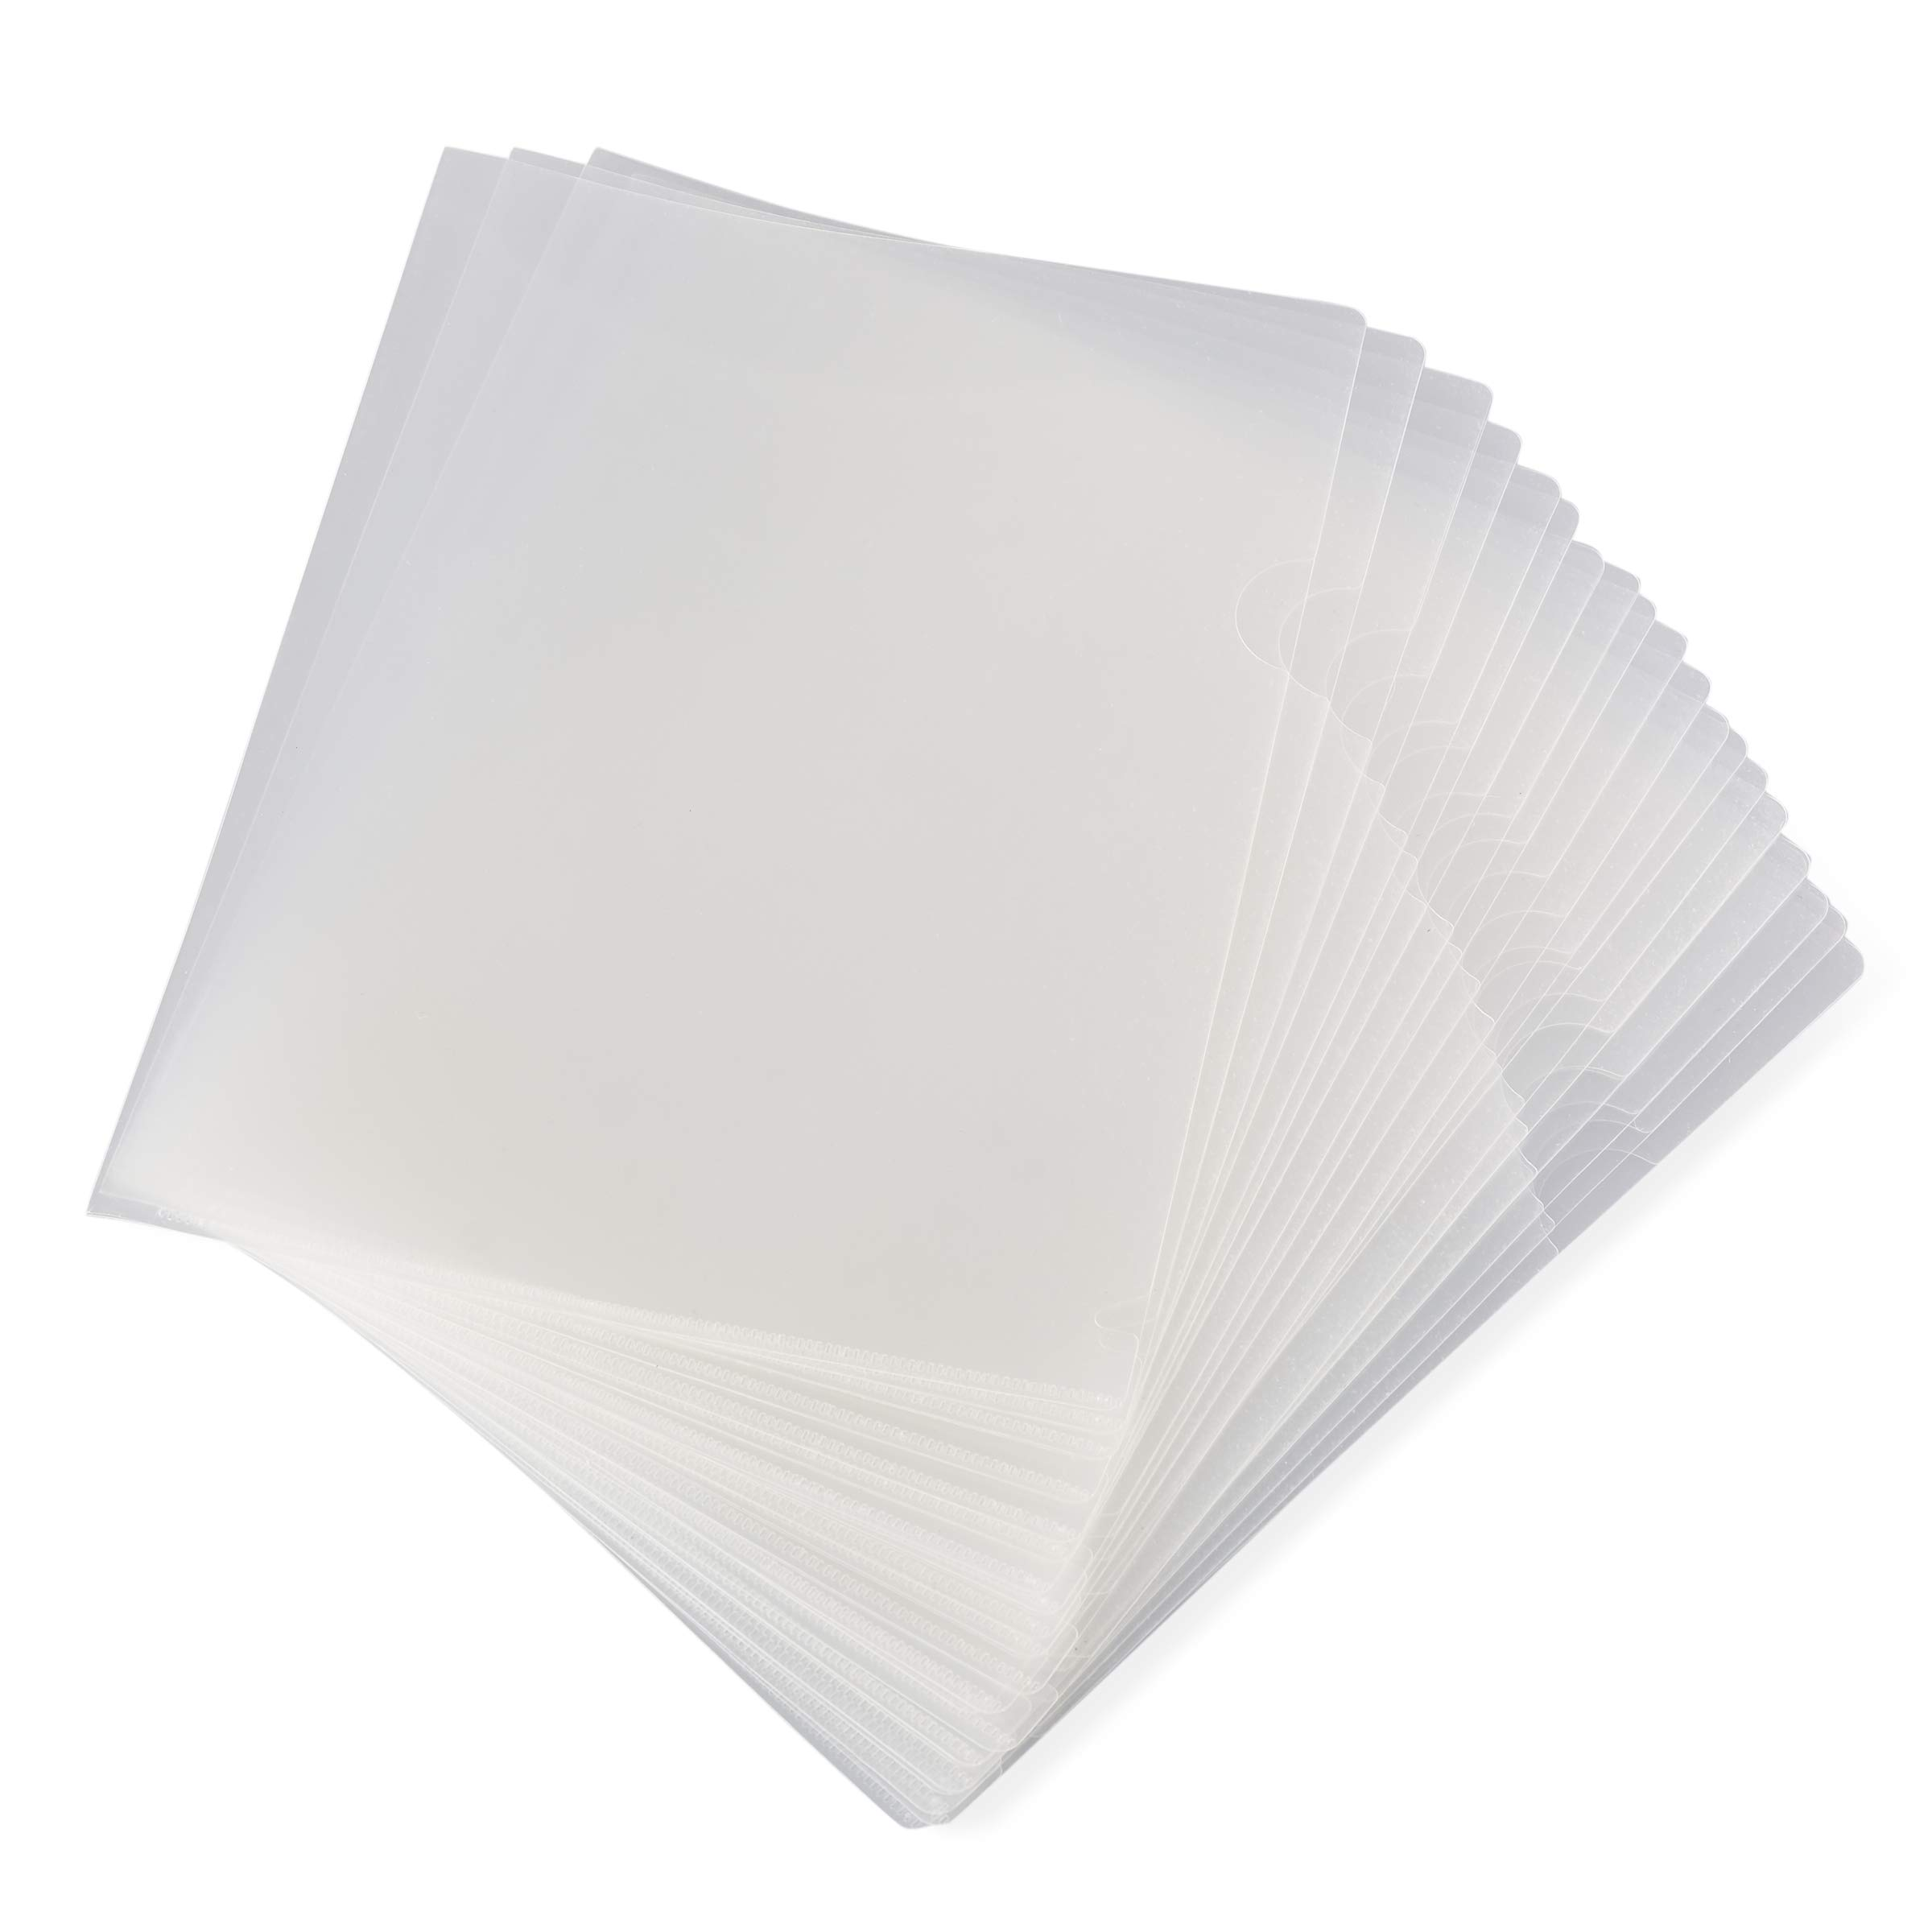 Paper Junkie 24-Pack Clear Project Protector Folders for Letter Size Documents, 11.4 x 8.9 Inches by Paper Junkie